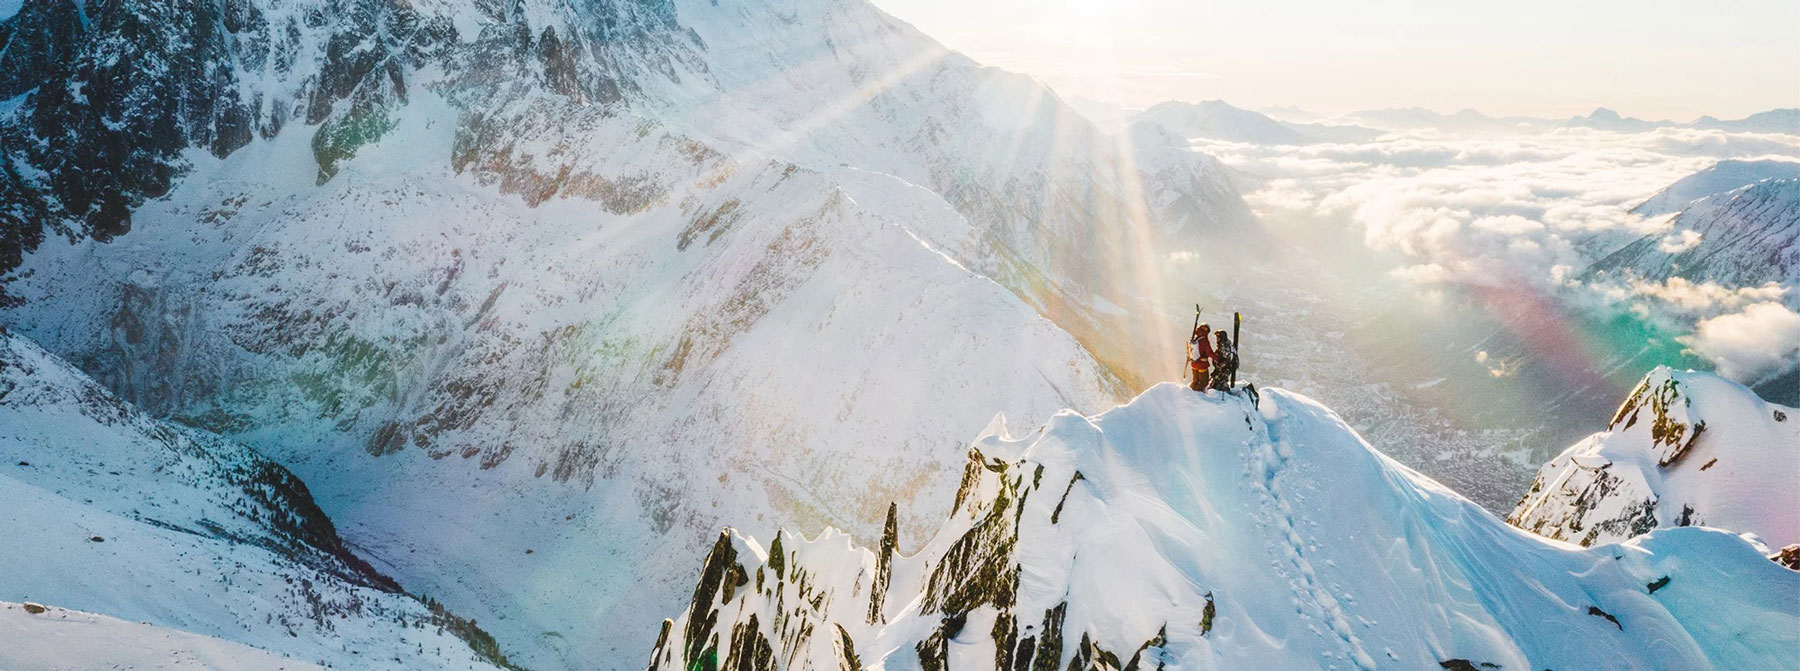 A vast mountainous landscape with two people and ski mountaineering gear on a lone peak in the foreground overlooking endless mountains.